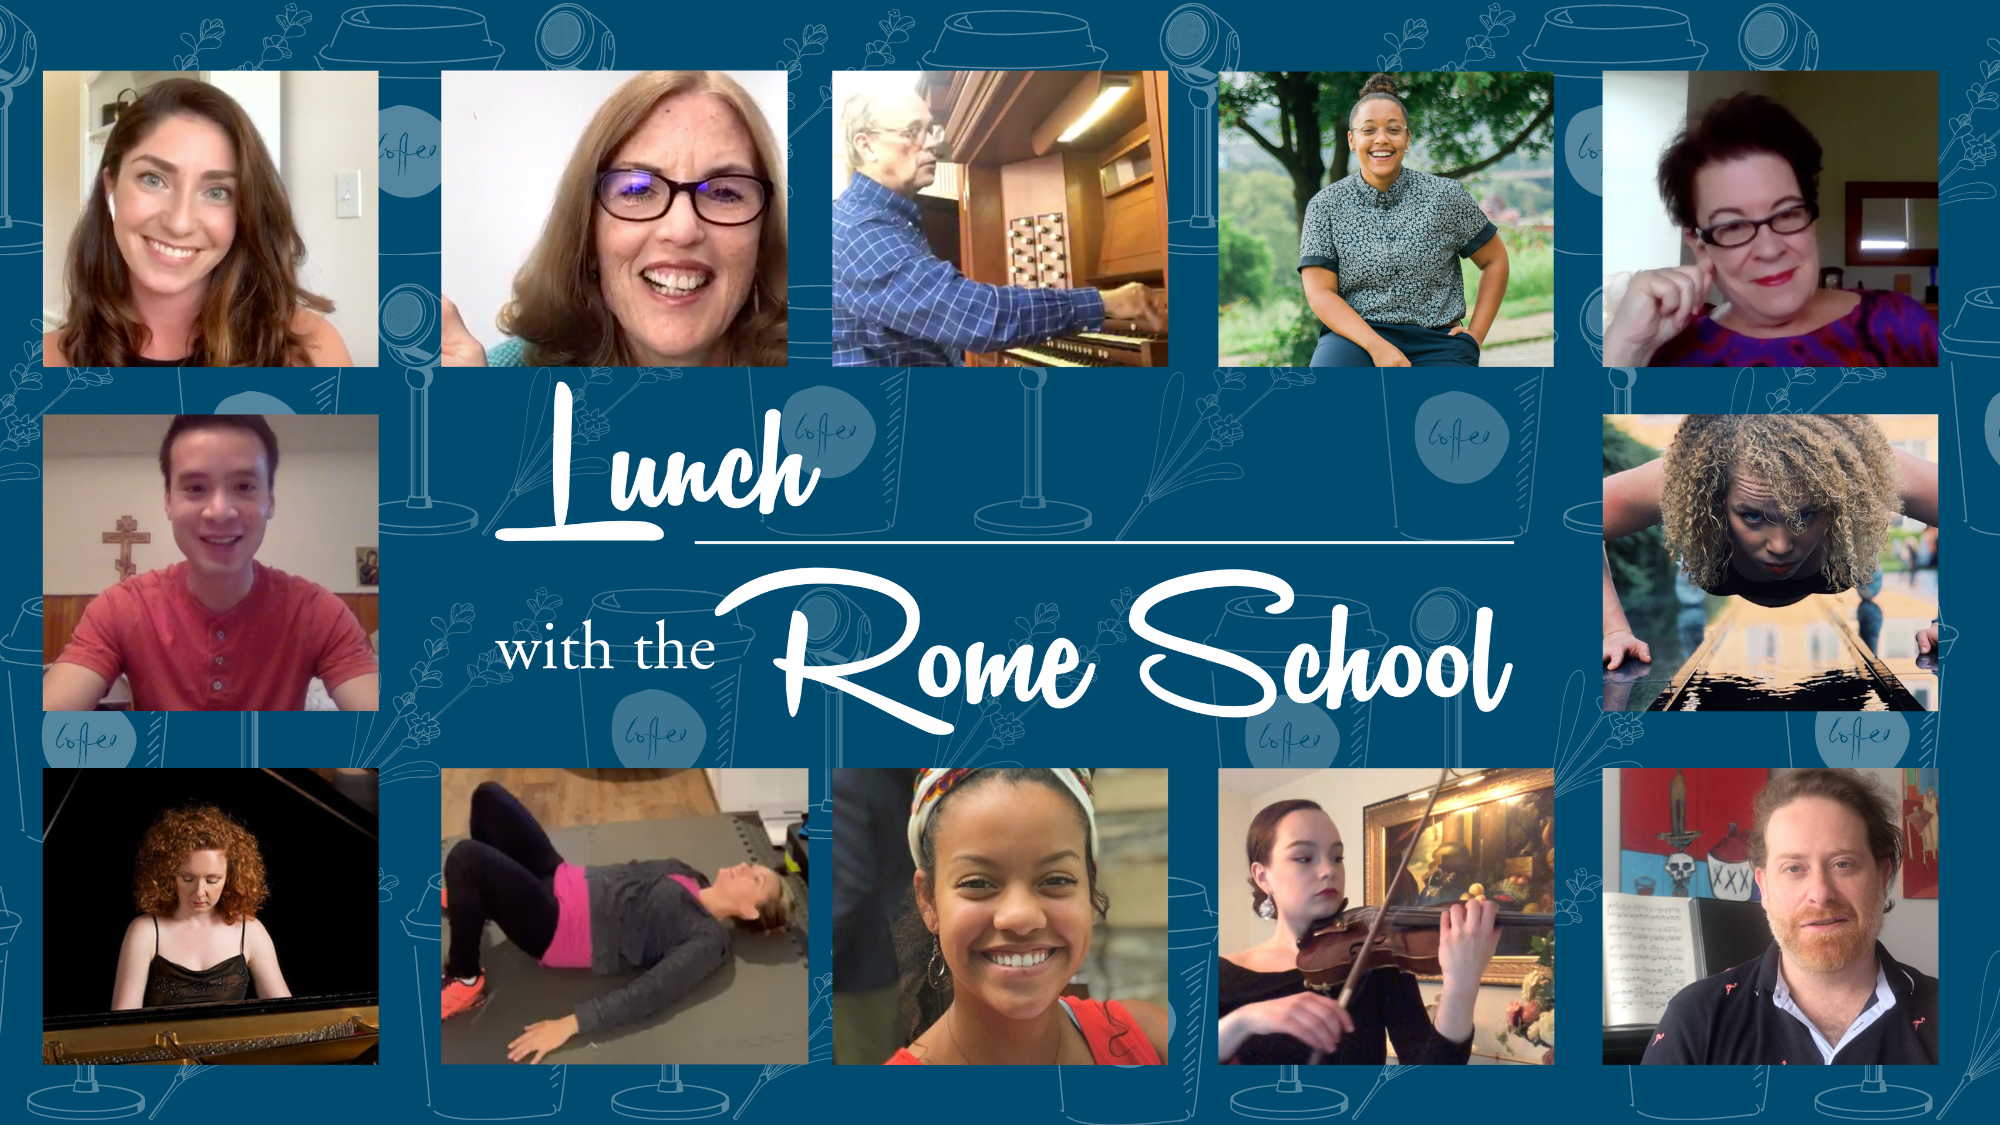 Lunch with the Rome School